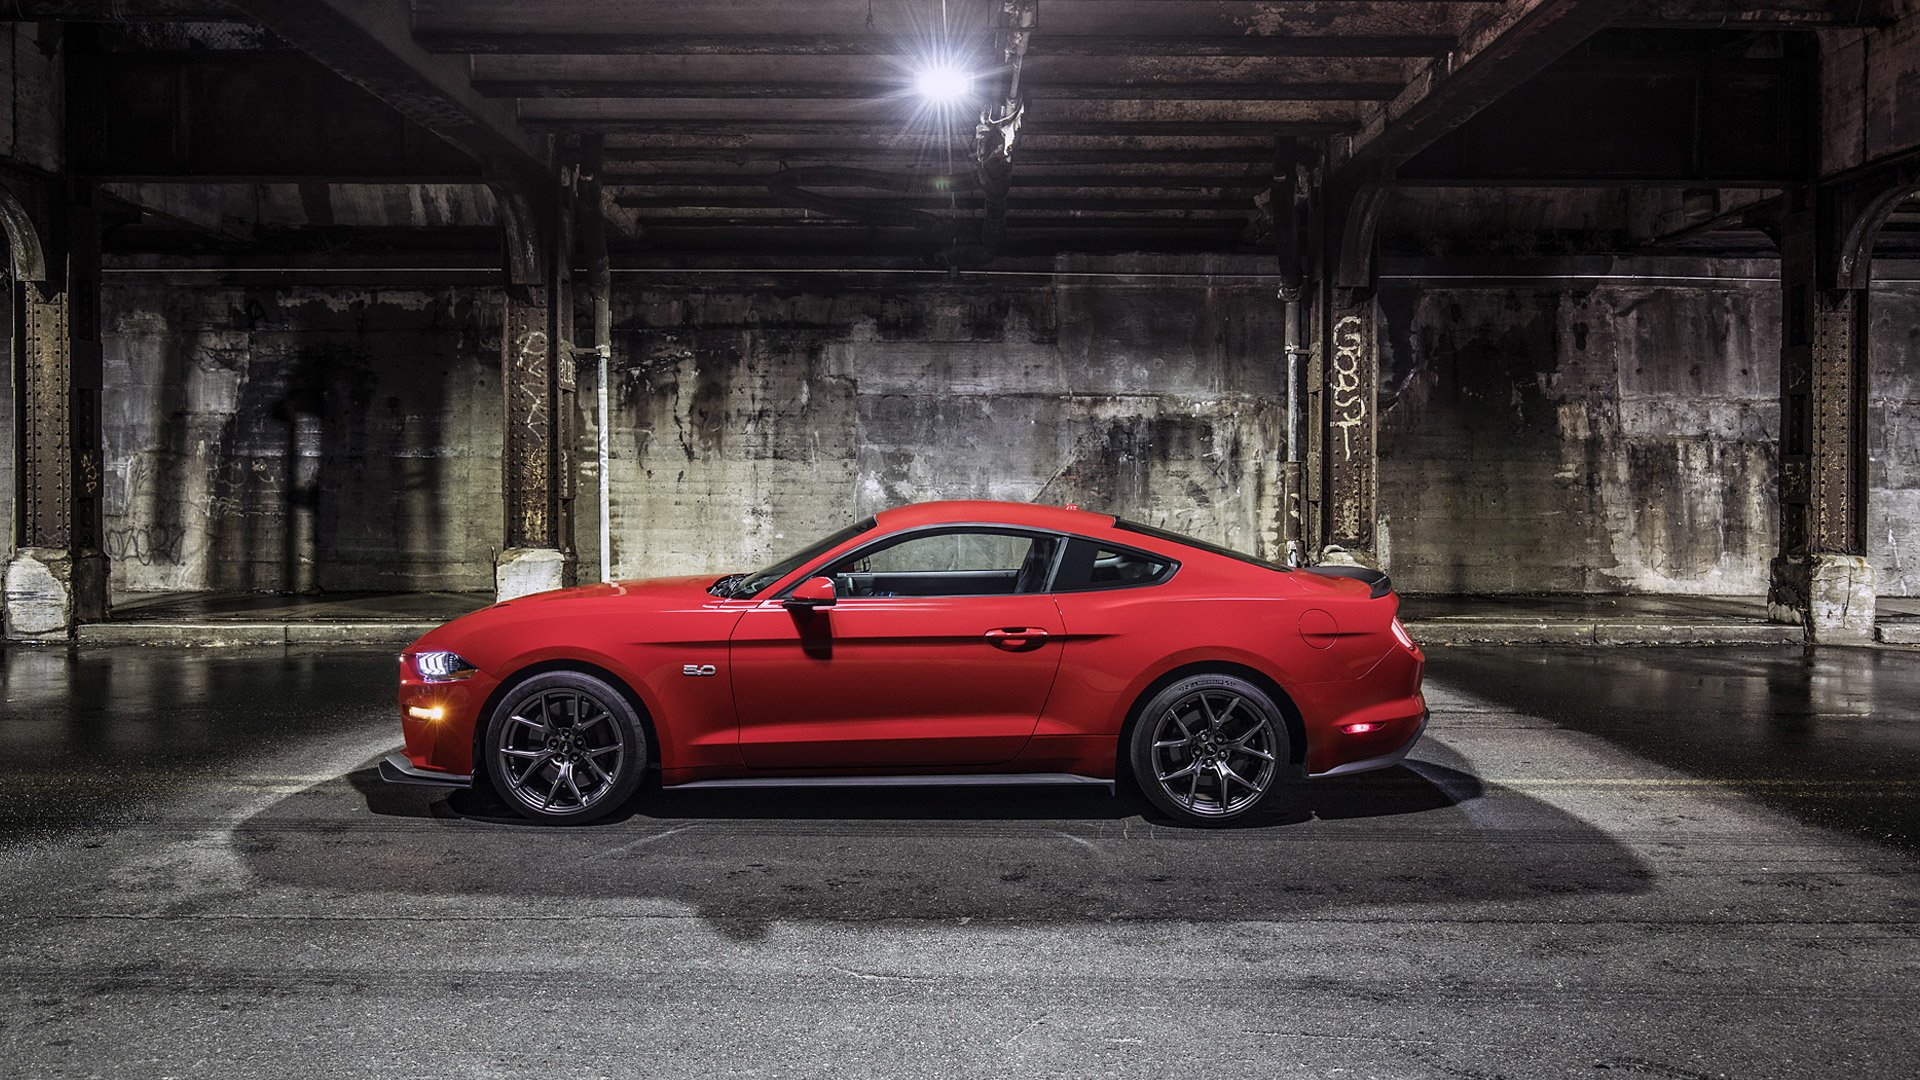 2018 Ford Mustang Gt Performance Pack Level 2 Papel De Parede Hd Plano De Fundo 1920x1080 Id 880947 Wallpaper Abyss